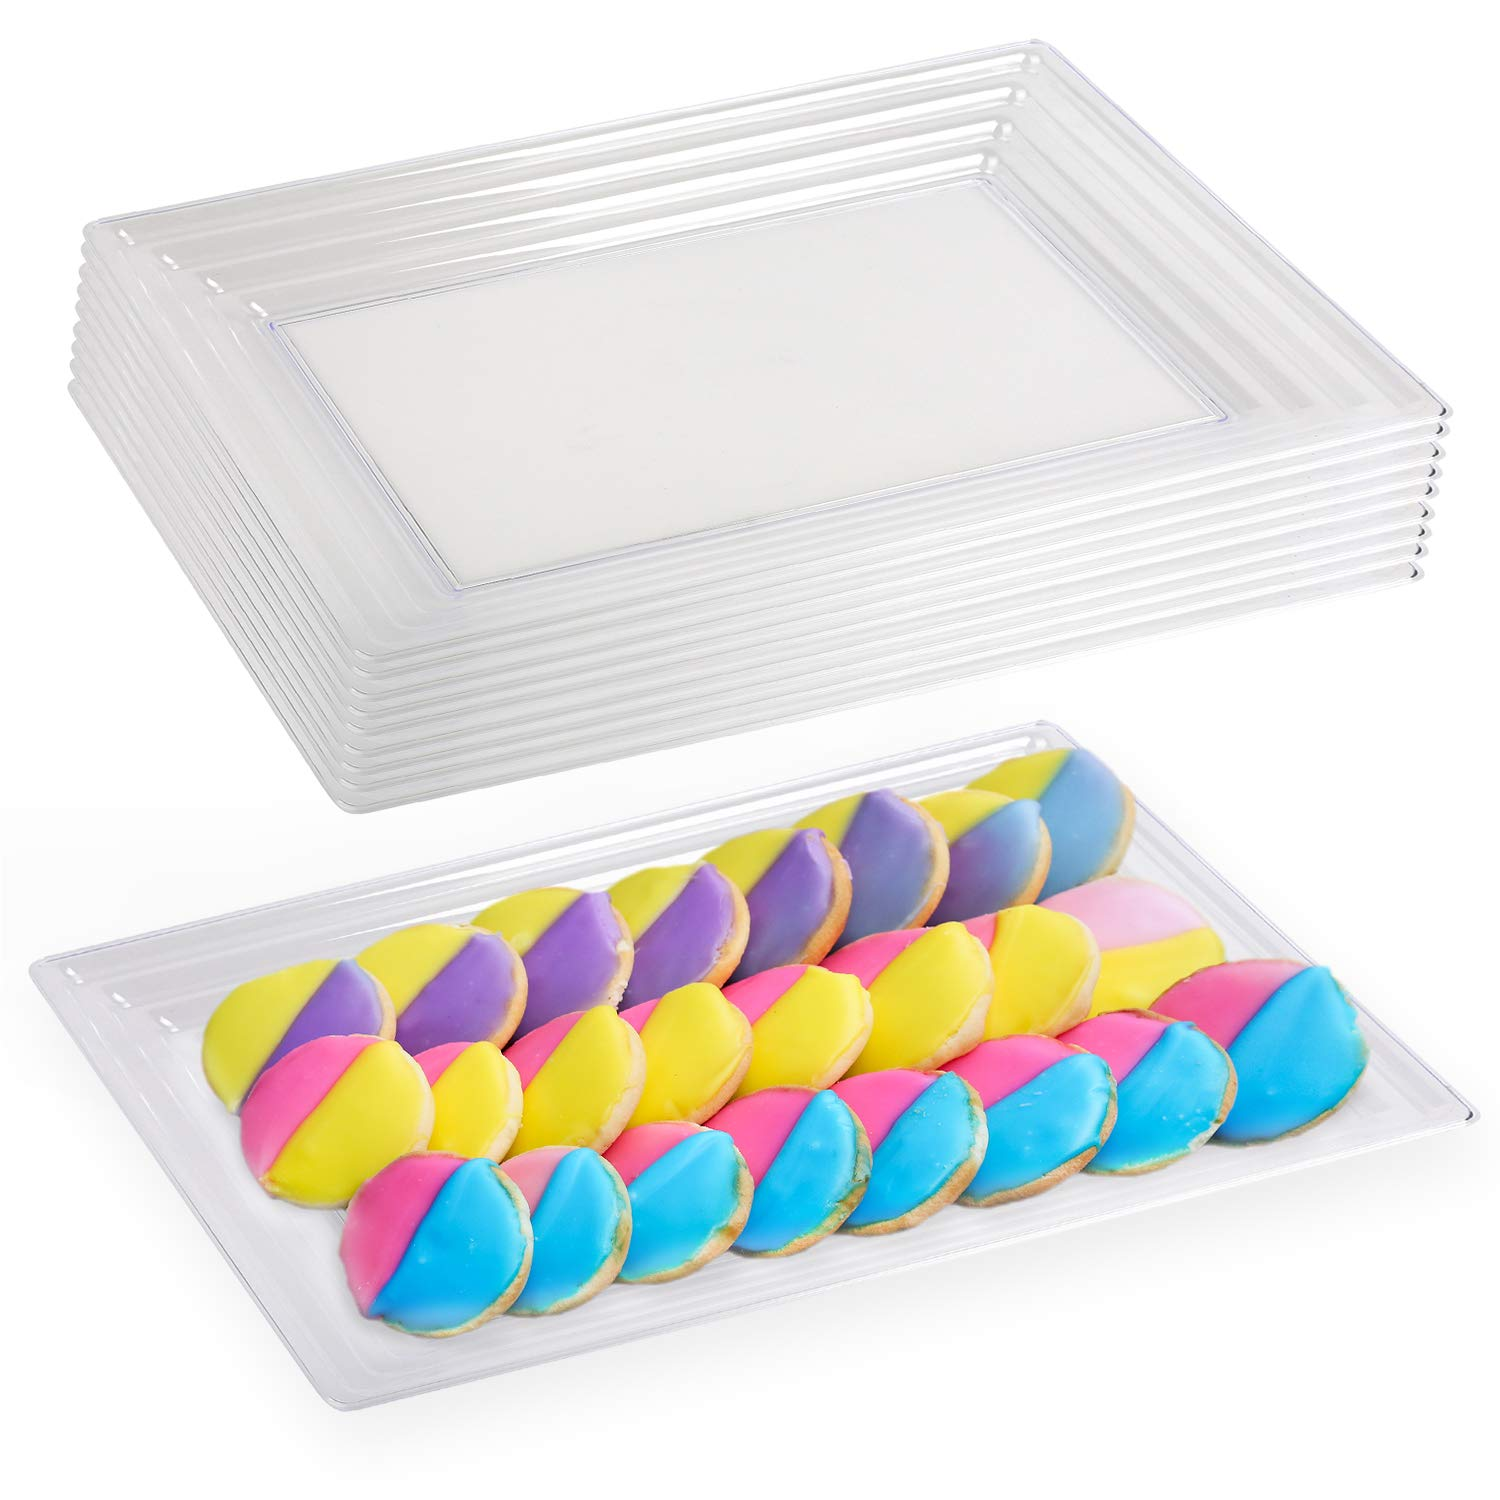 """Elegant Disposable Plastic Serving Trays 24 Pcs – Heavyweight Fancy 11""""x16"""" Rectangular Clear Large Serving Platters - Reusable Party Appetizer Tray For Wedding, Thanksgiving, Birthday & All Occasions"""